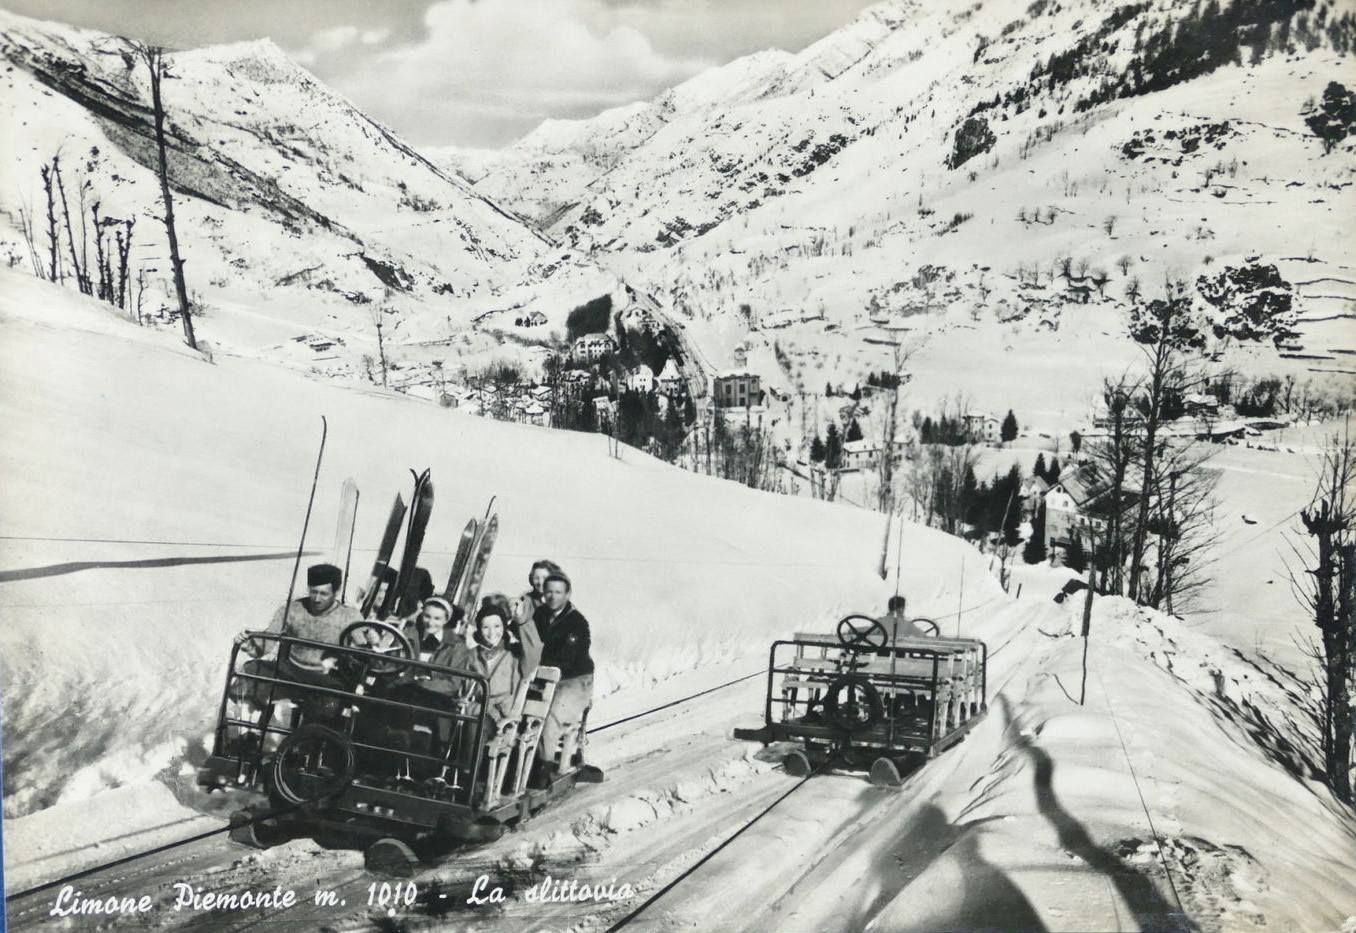 Limone Piemonte – La slittovia – 1954